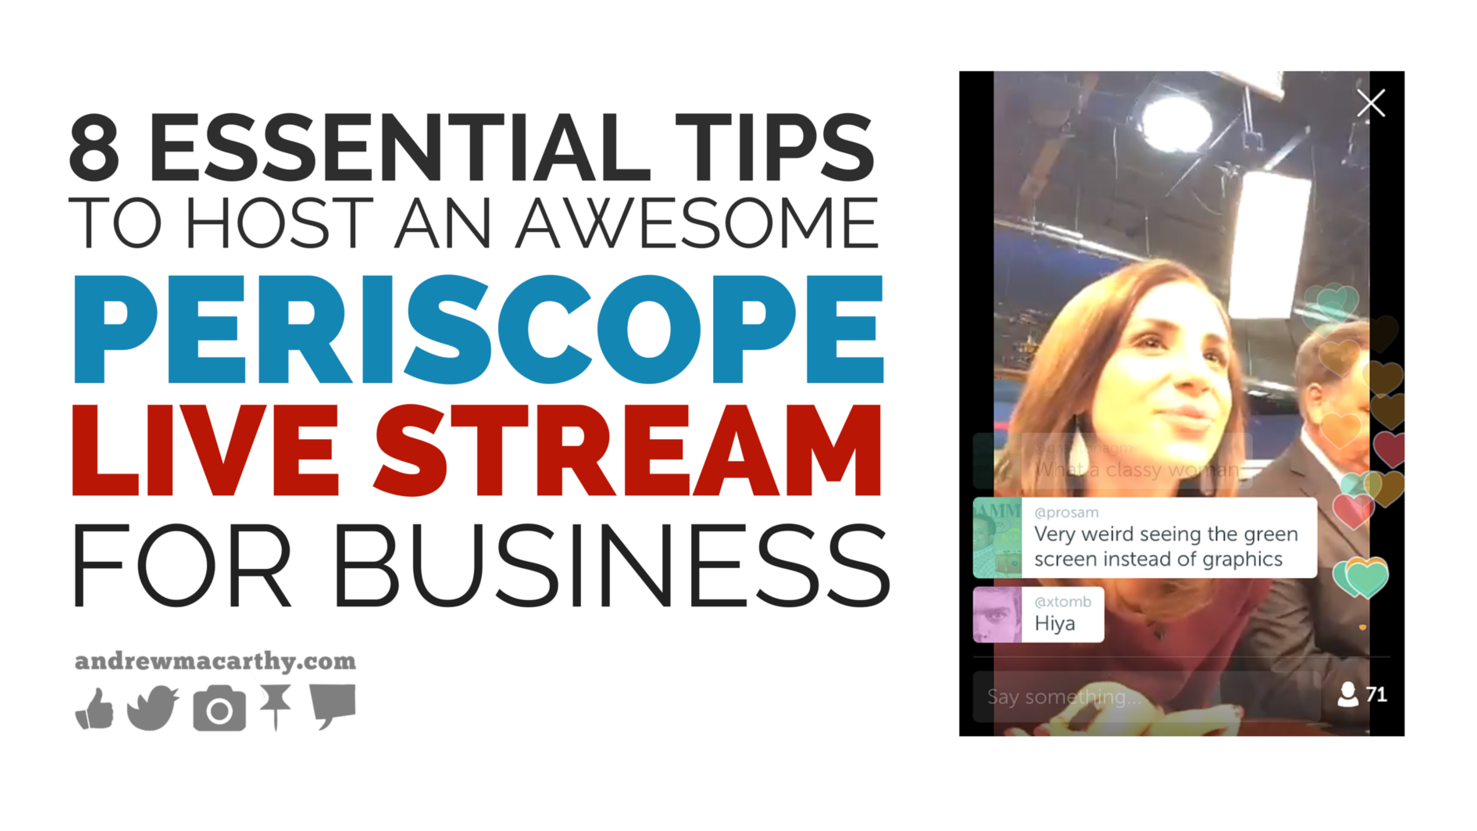 8 Essential Tips to Host An Awesome Periscope Live Stream For Business